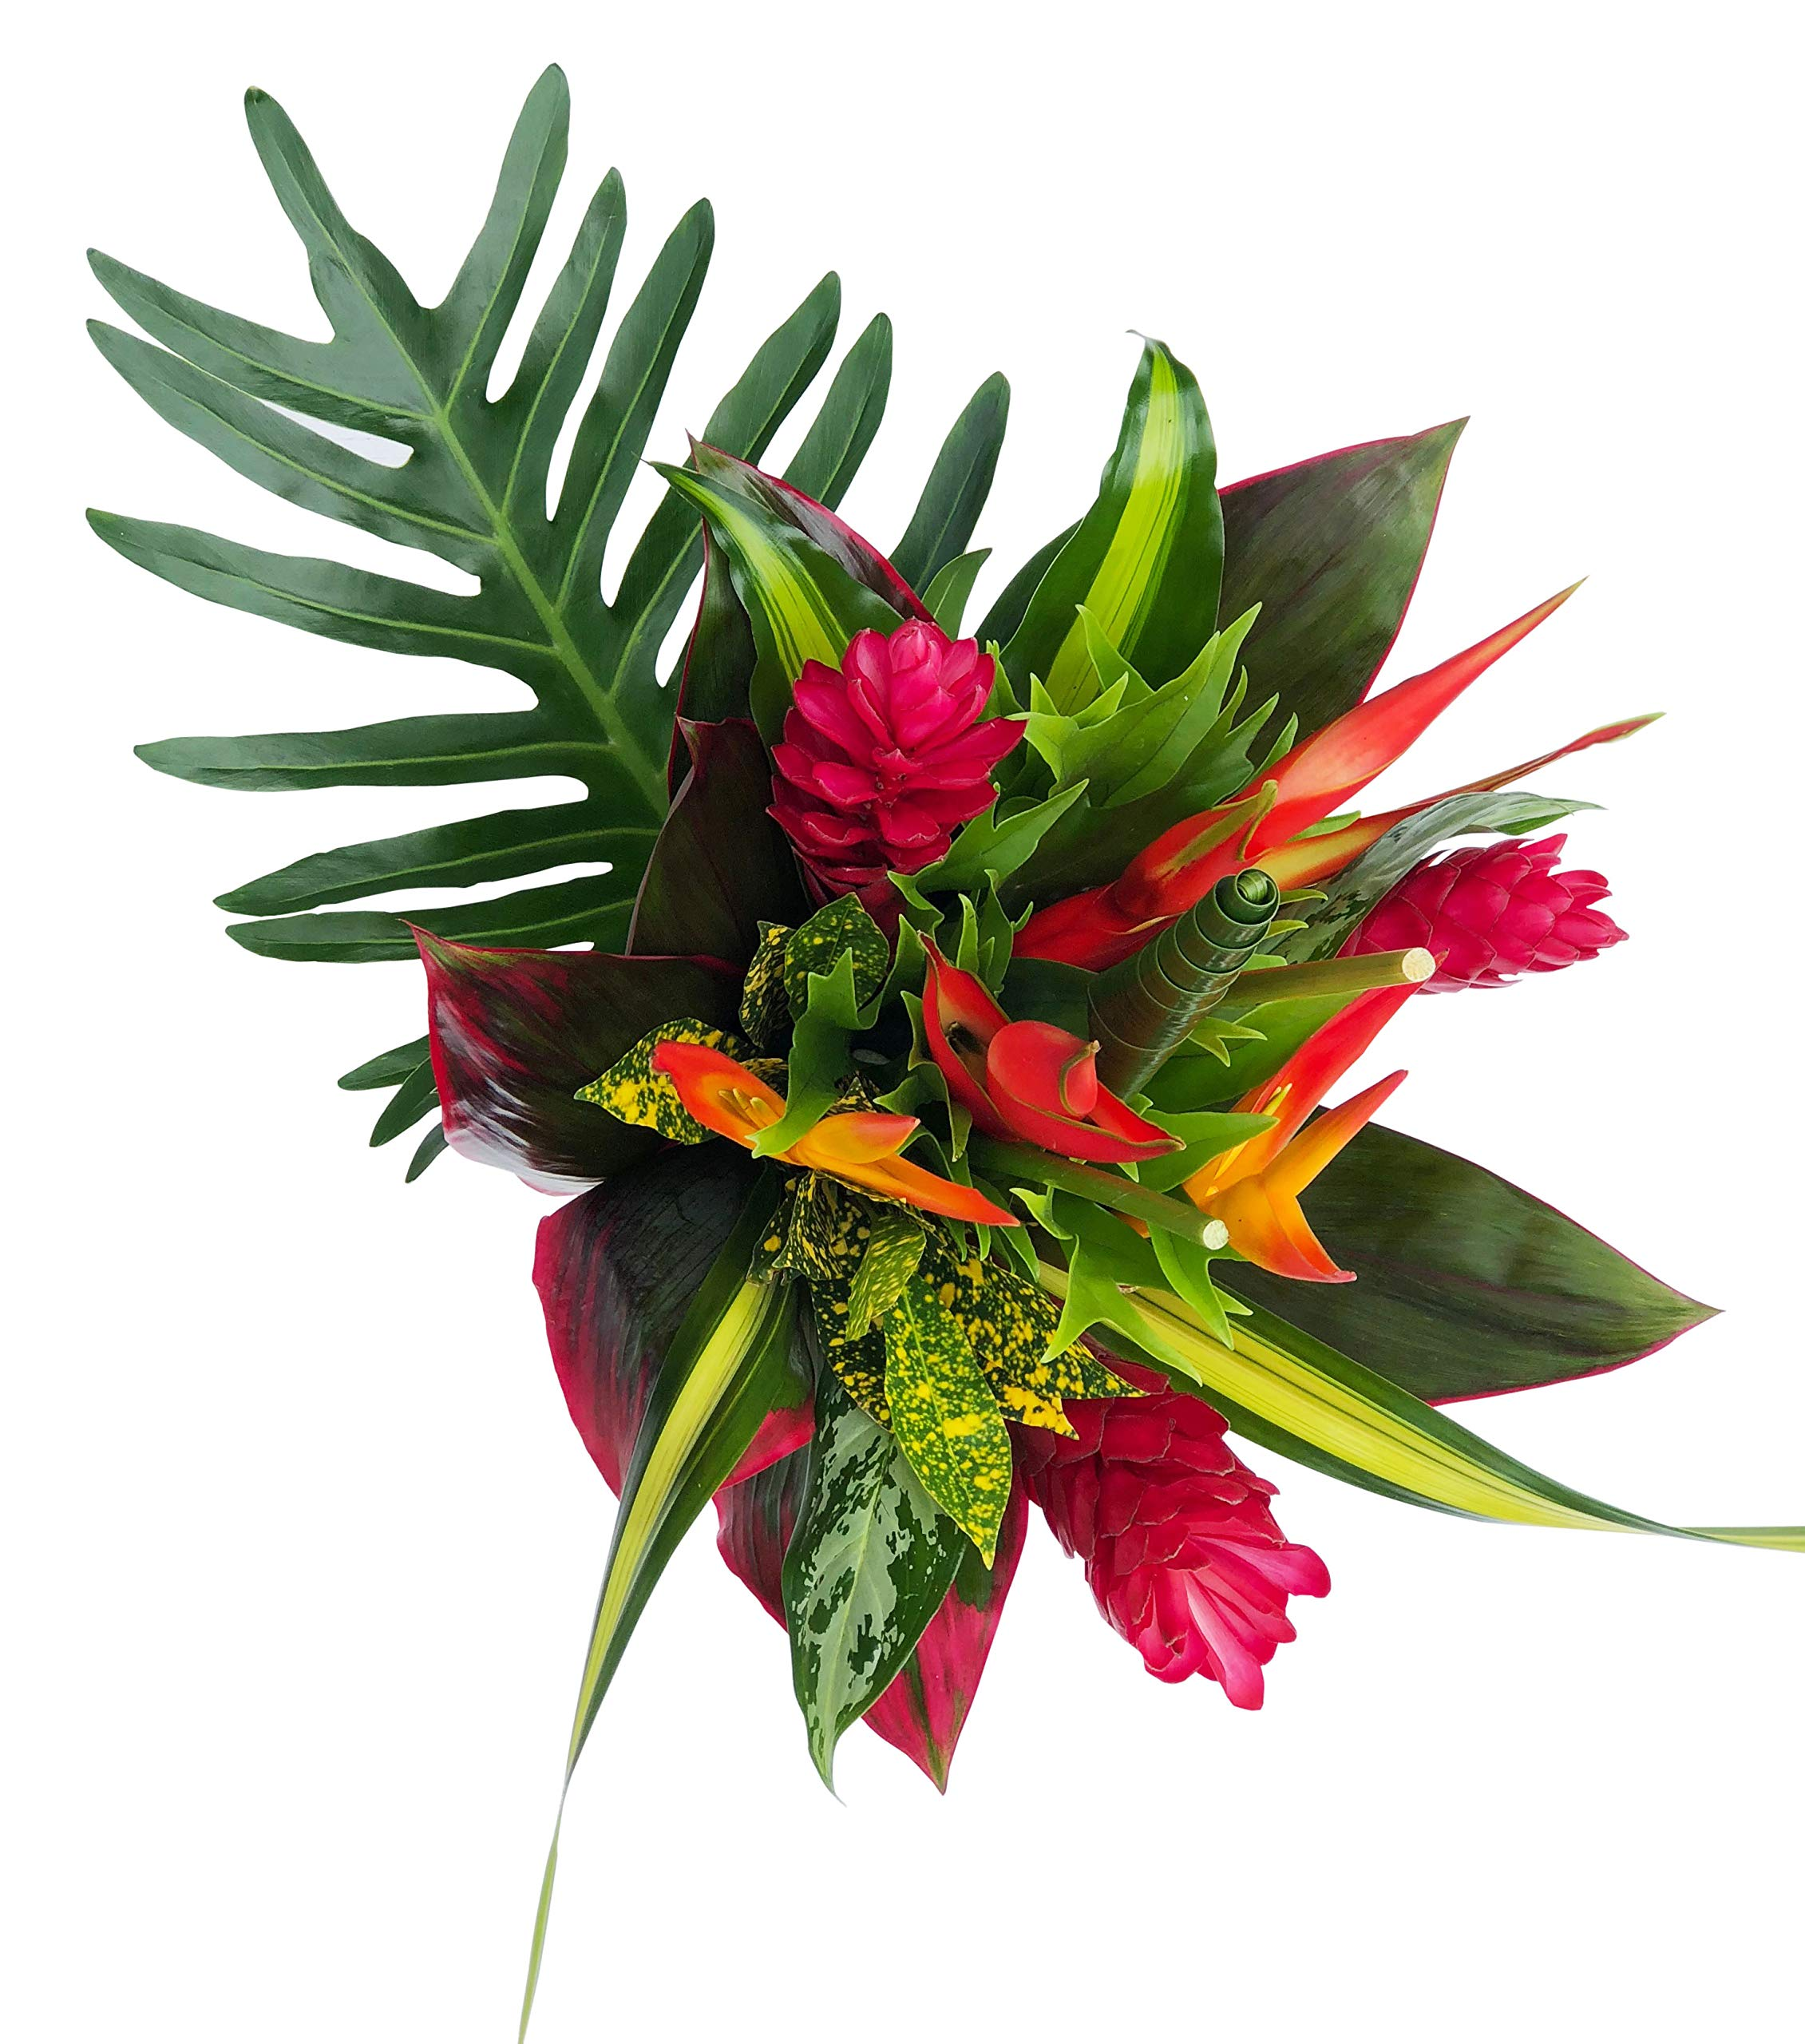 Tropical Bouquet Tropical Treasure with Bright Birds of Paradise, Pink Ginger, and Bold Tropical Greenery by BloomsyBox (Image #1)